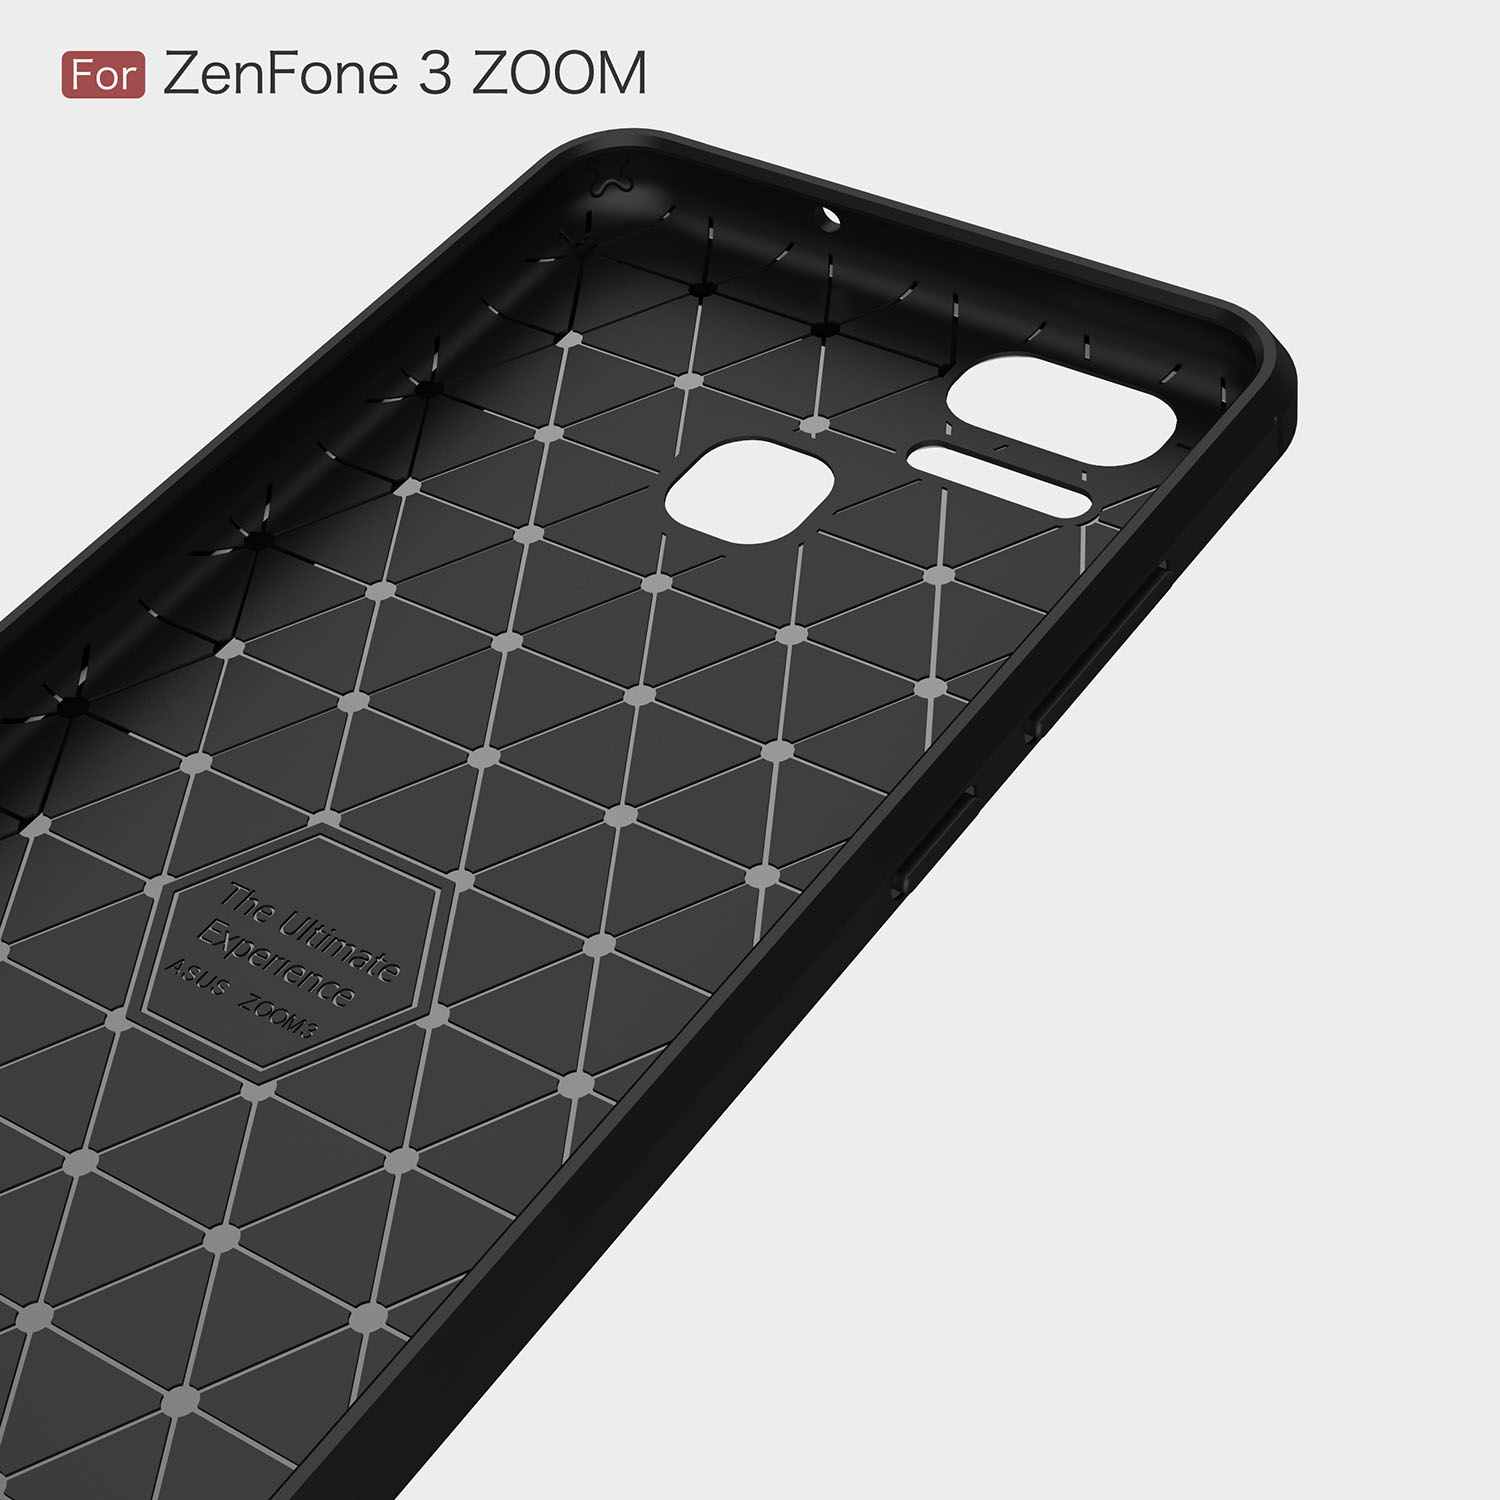 Bakeey Carbon Fiber Shockproof Silicone Back Cover Protective Case for ASUS ZenFone 3 Zoom ZE553KL